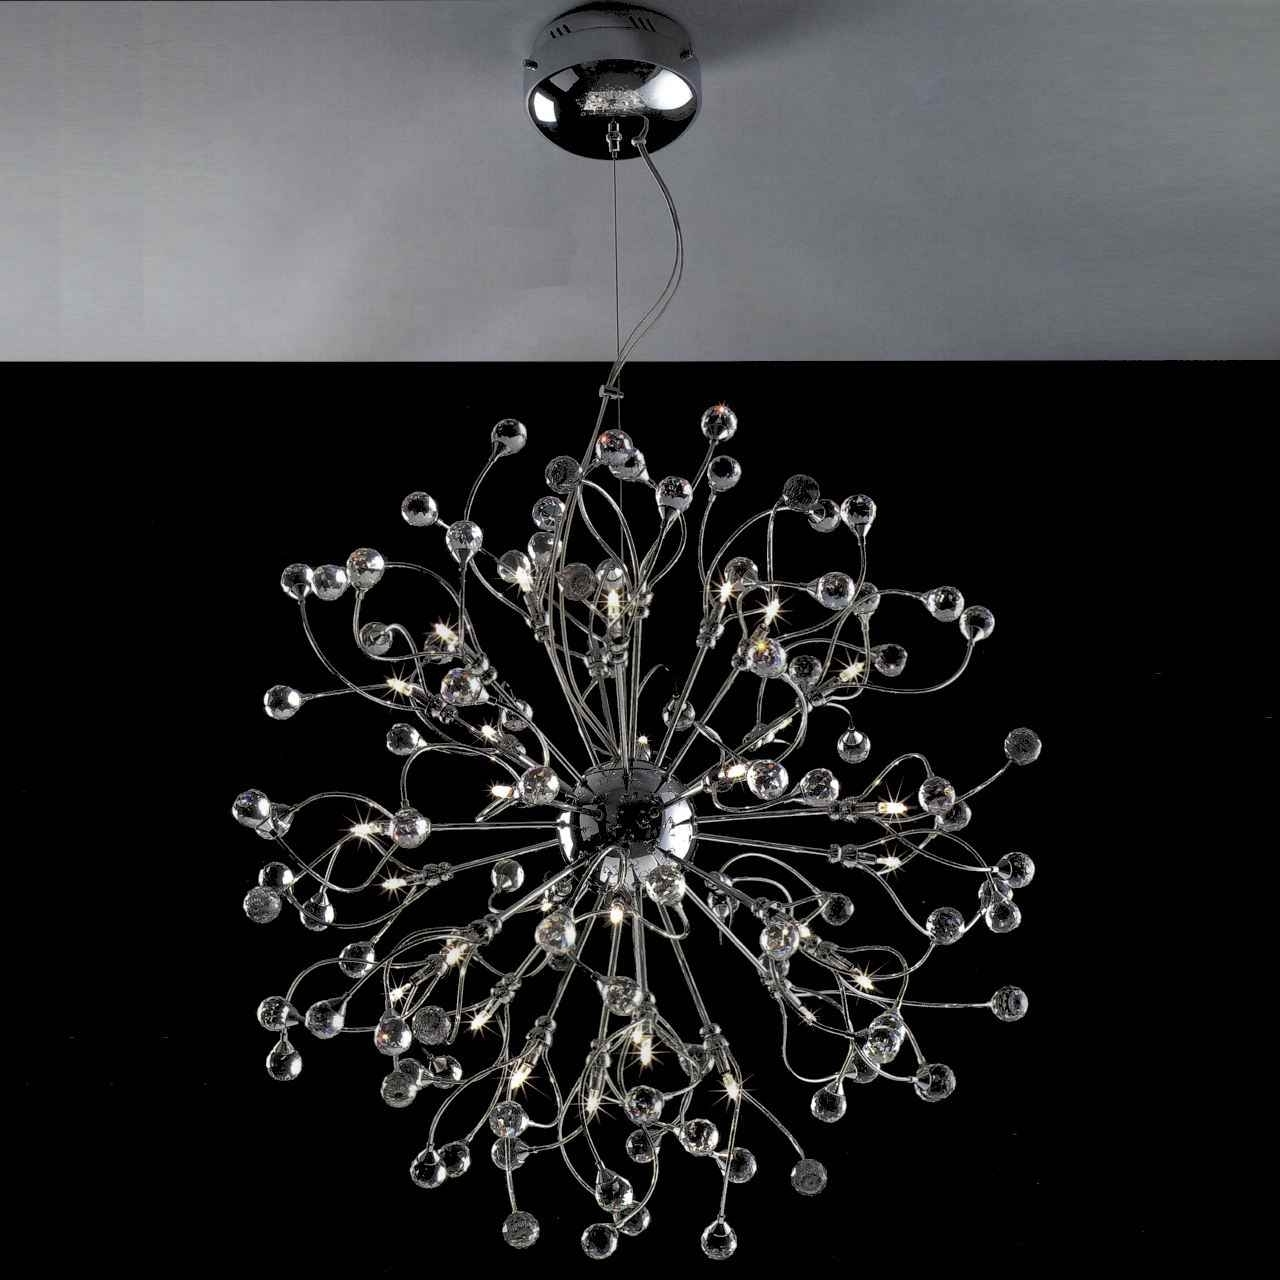 Chandelier Chrome Regarding Current Brizzo Lighting Stores (View 11 of 15)